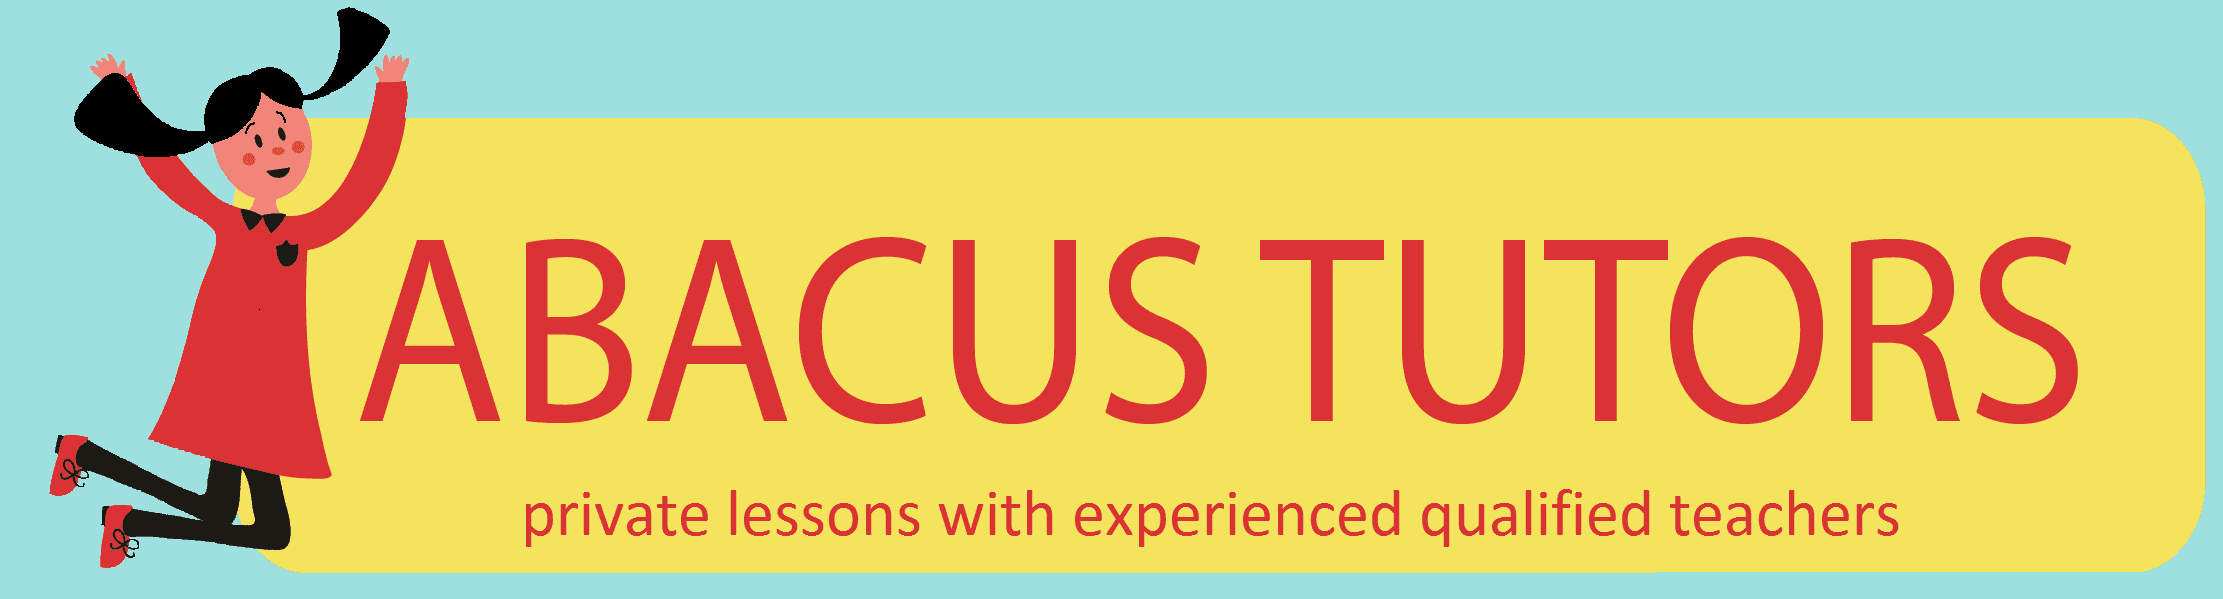 Abacus Tutors logo